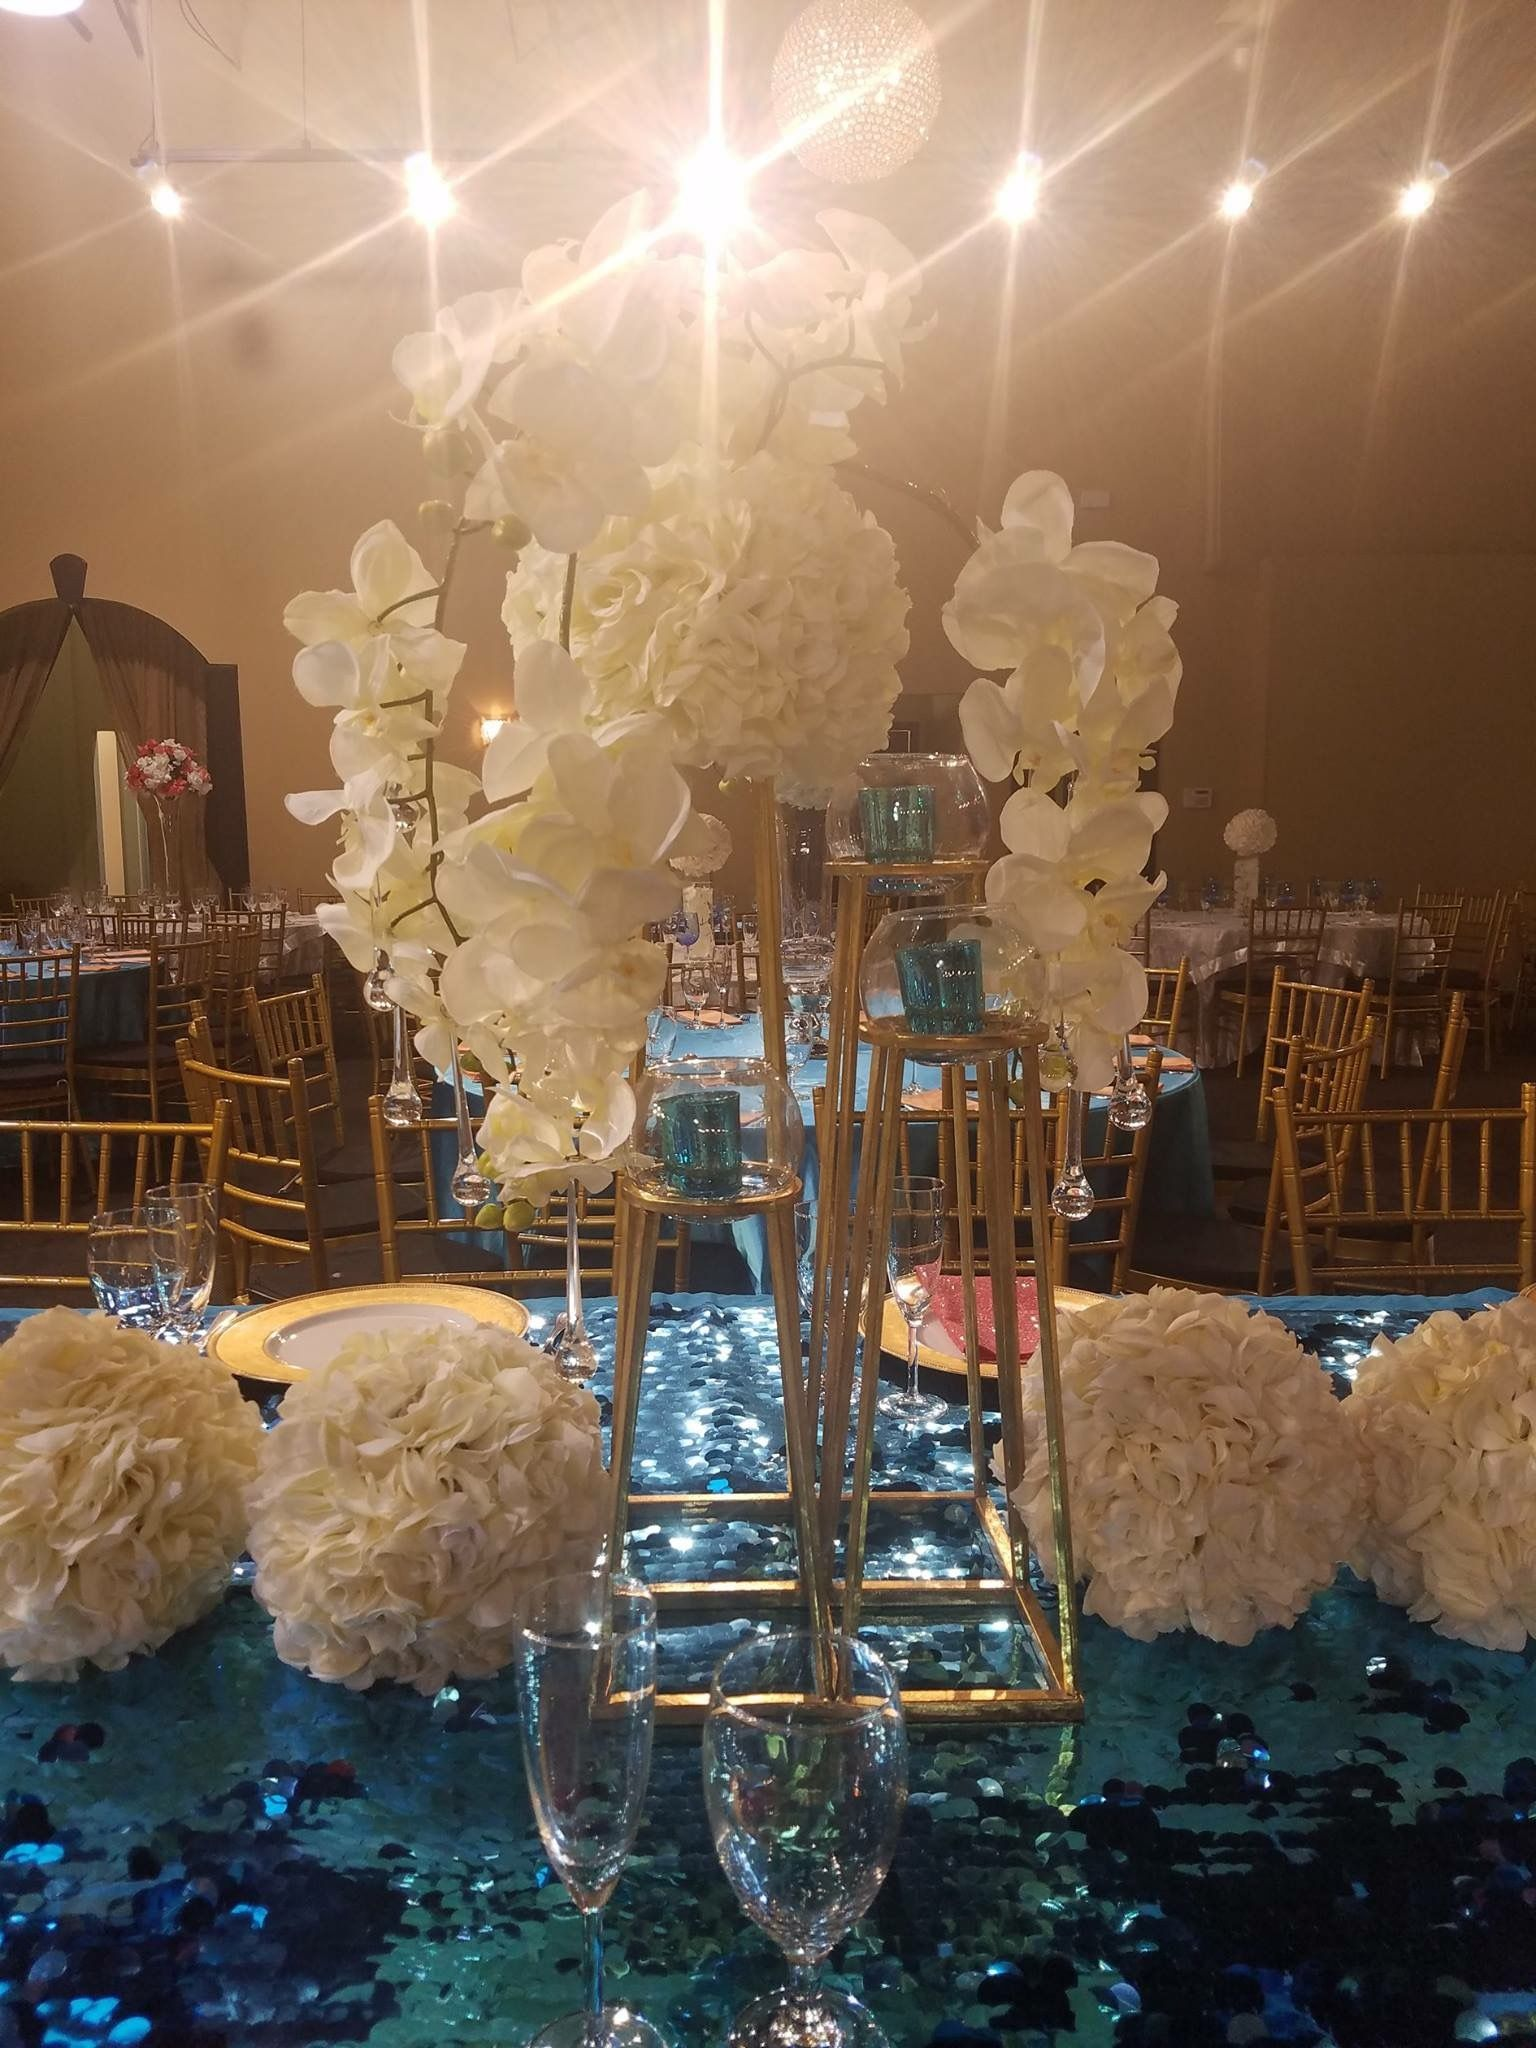 Amazing centerpiece for an amazing table setting @occasionsbanquethall #centerpiece #tablesetting #tablescape # & Amazing centerpiece for an amazing table setting ...